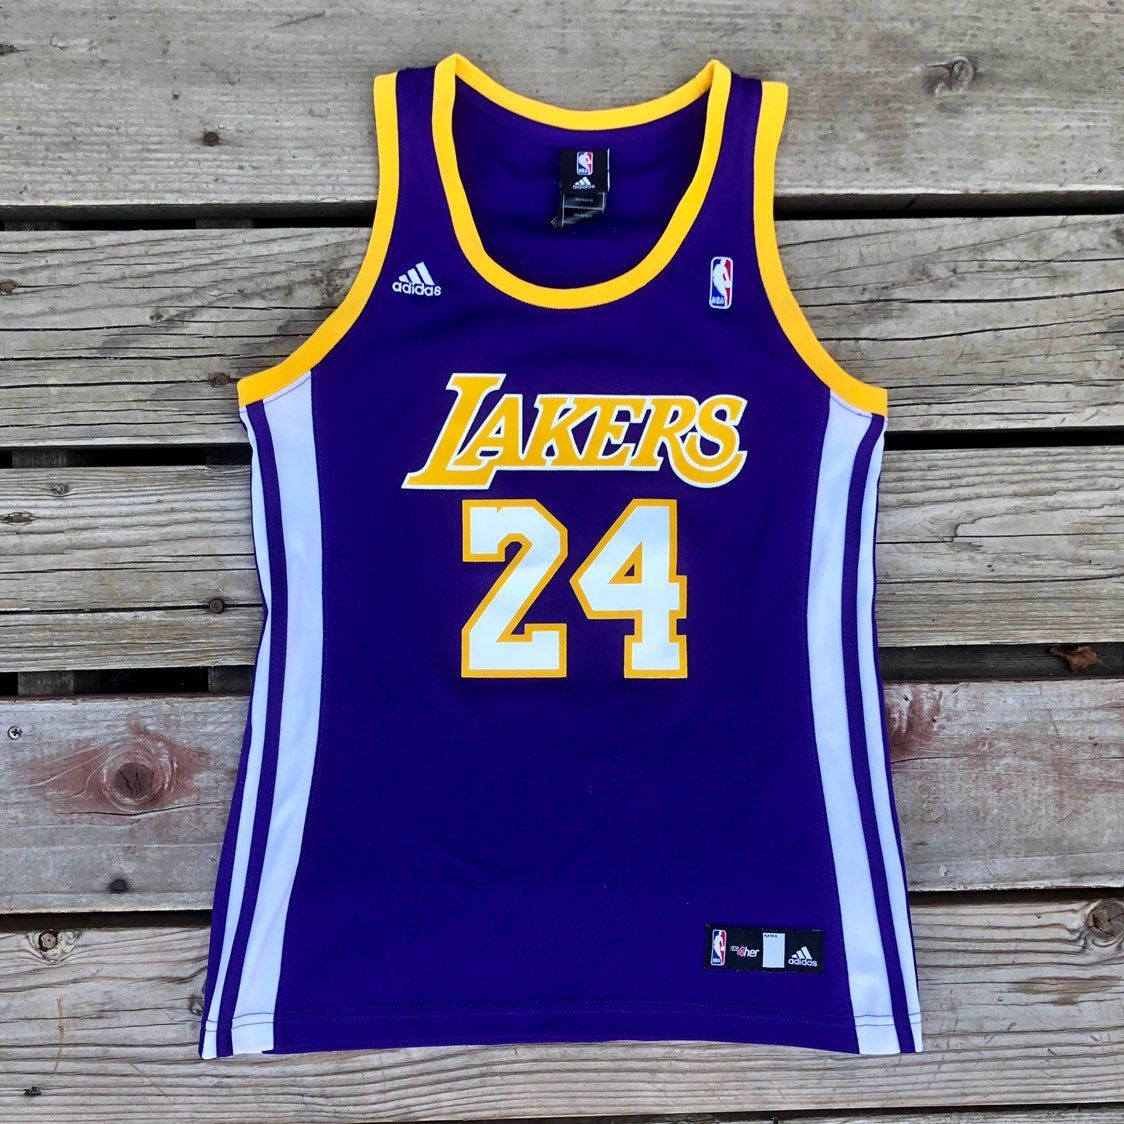 Adidas Kobe Bryant Los Angeles Lakers Jersey Youth Size Medium Good 9 10 Condition Always Willing To Do Lower Pric Adidas Tops Kobe Bryant Los Angeles Adidas